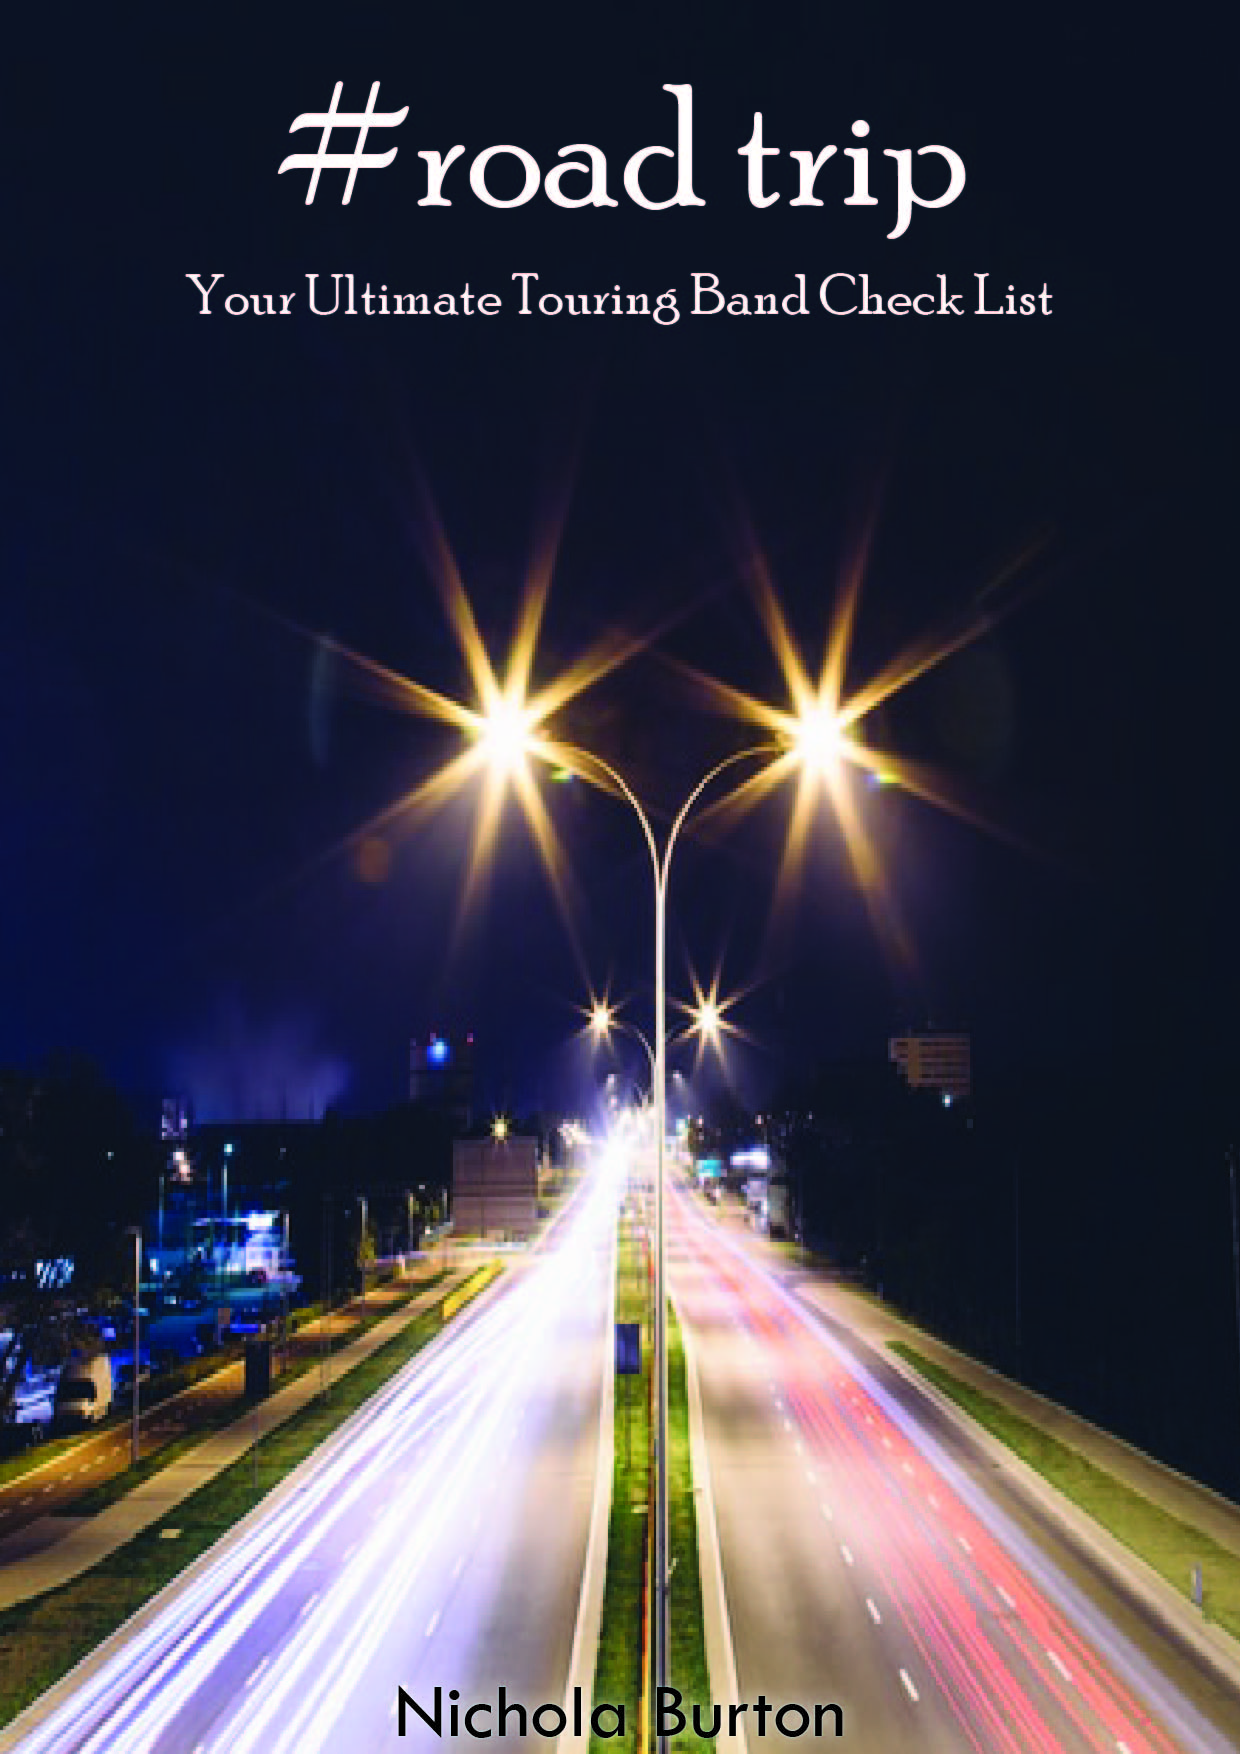 Your Ultimate Tour Check List